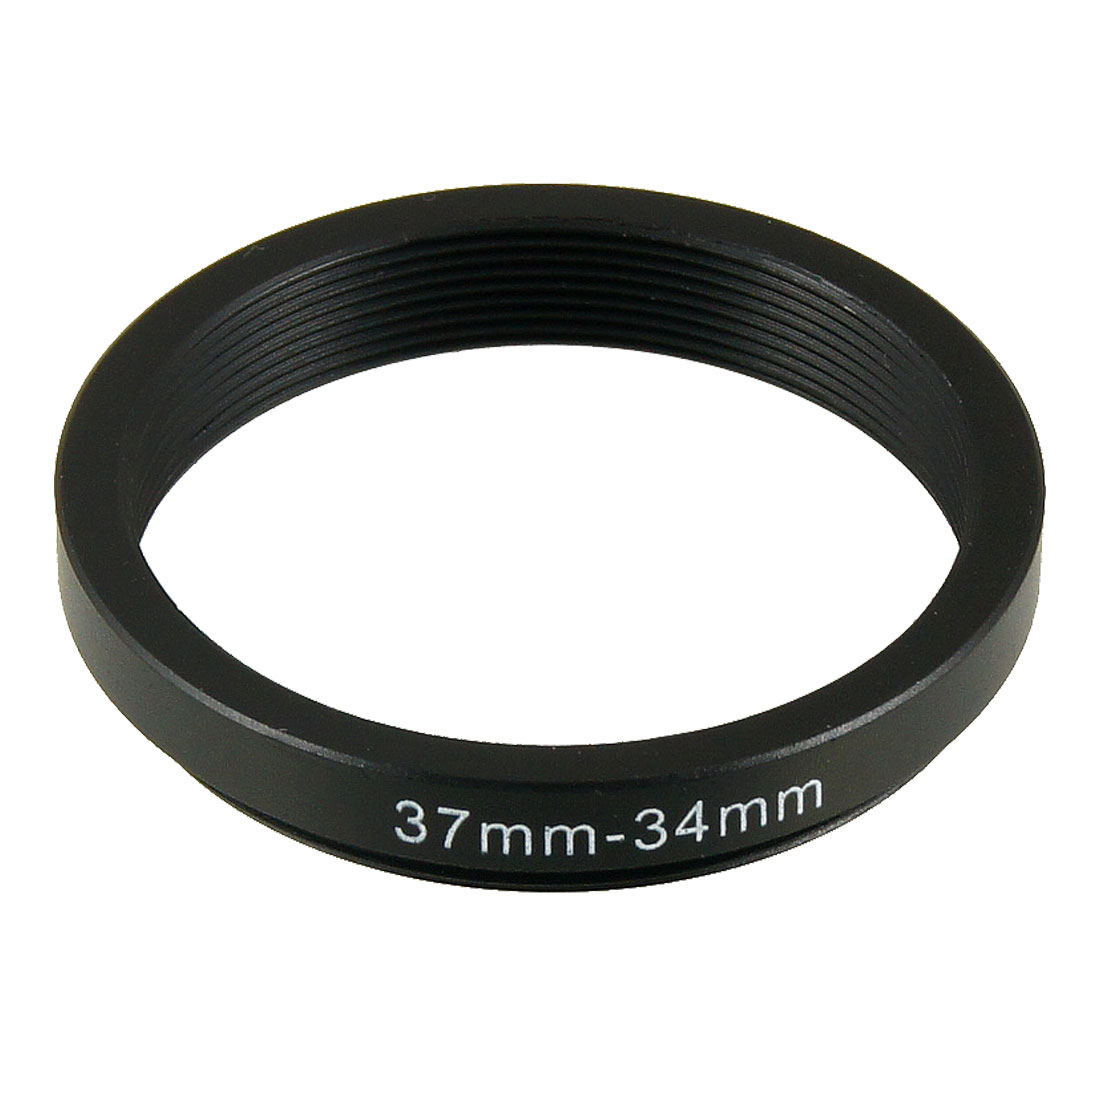 37mm-34mm 37mm to 34mm Black Step Down Ring Adaptor for Camera